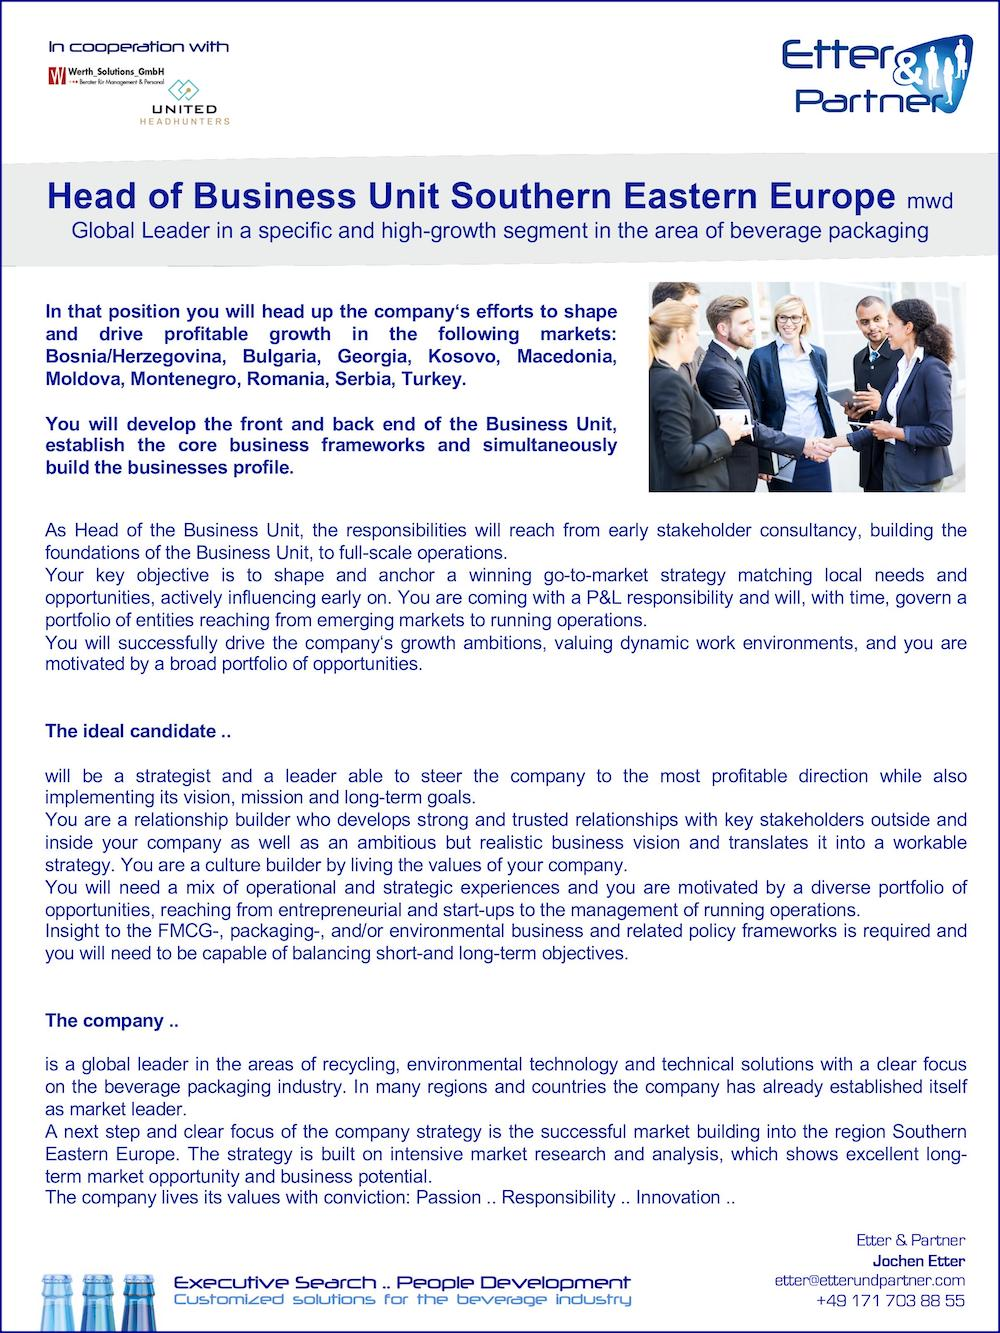 Head of Business Unit Southern Eastern Europe (m/w/d)